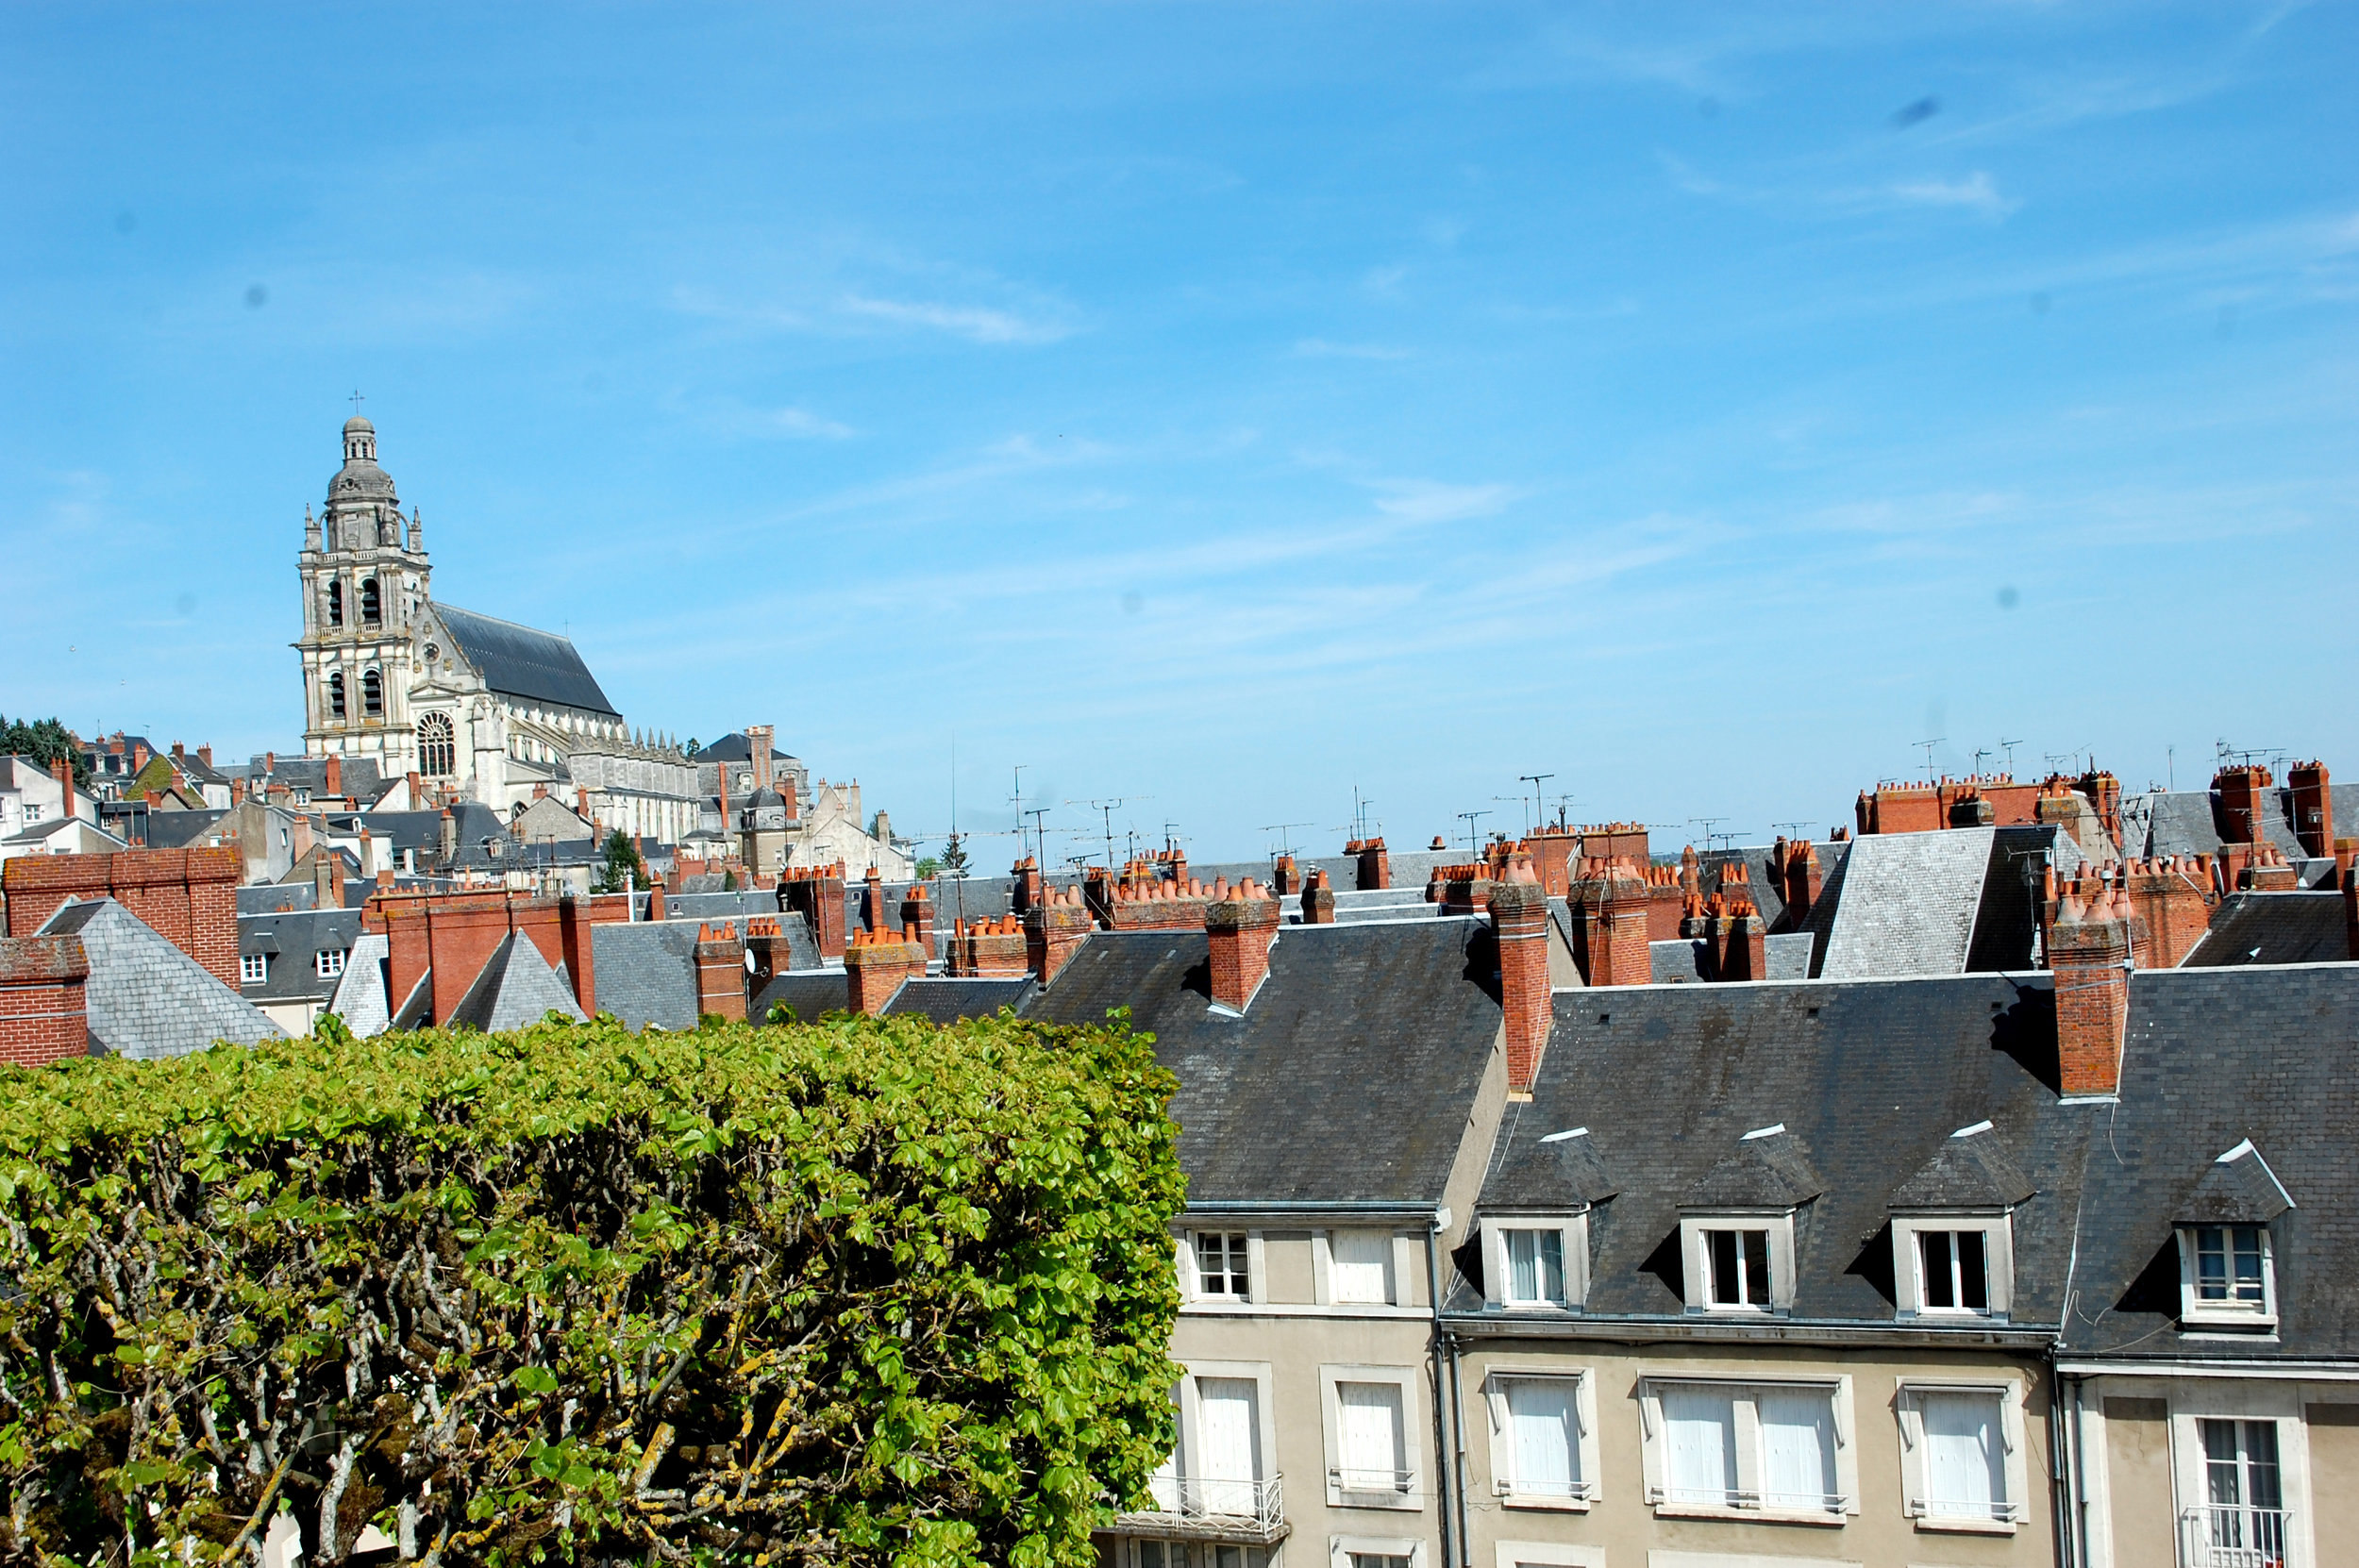 Mary Poppins view of rooftops in Blois